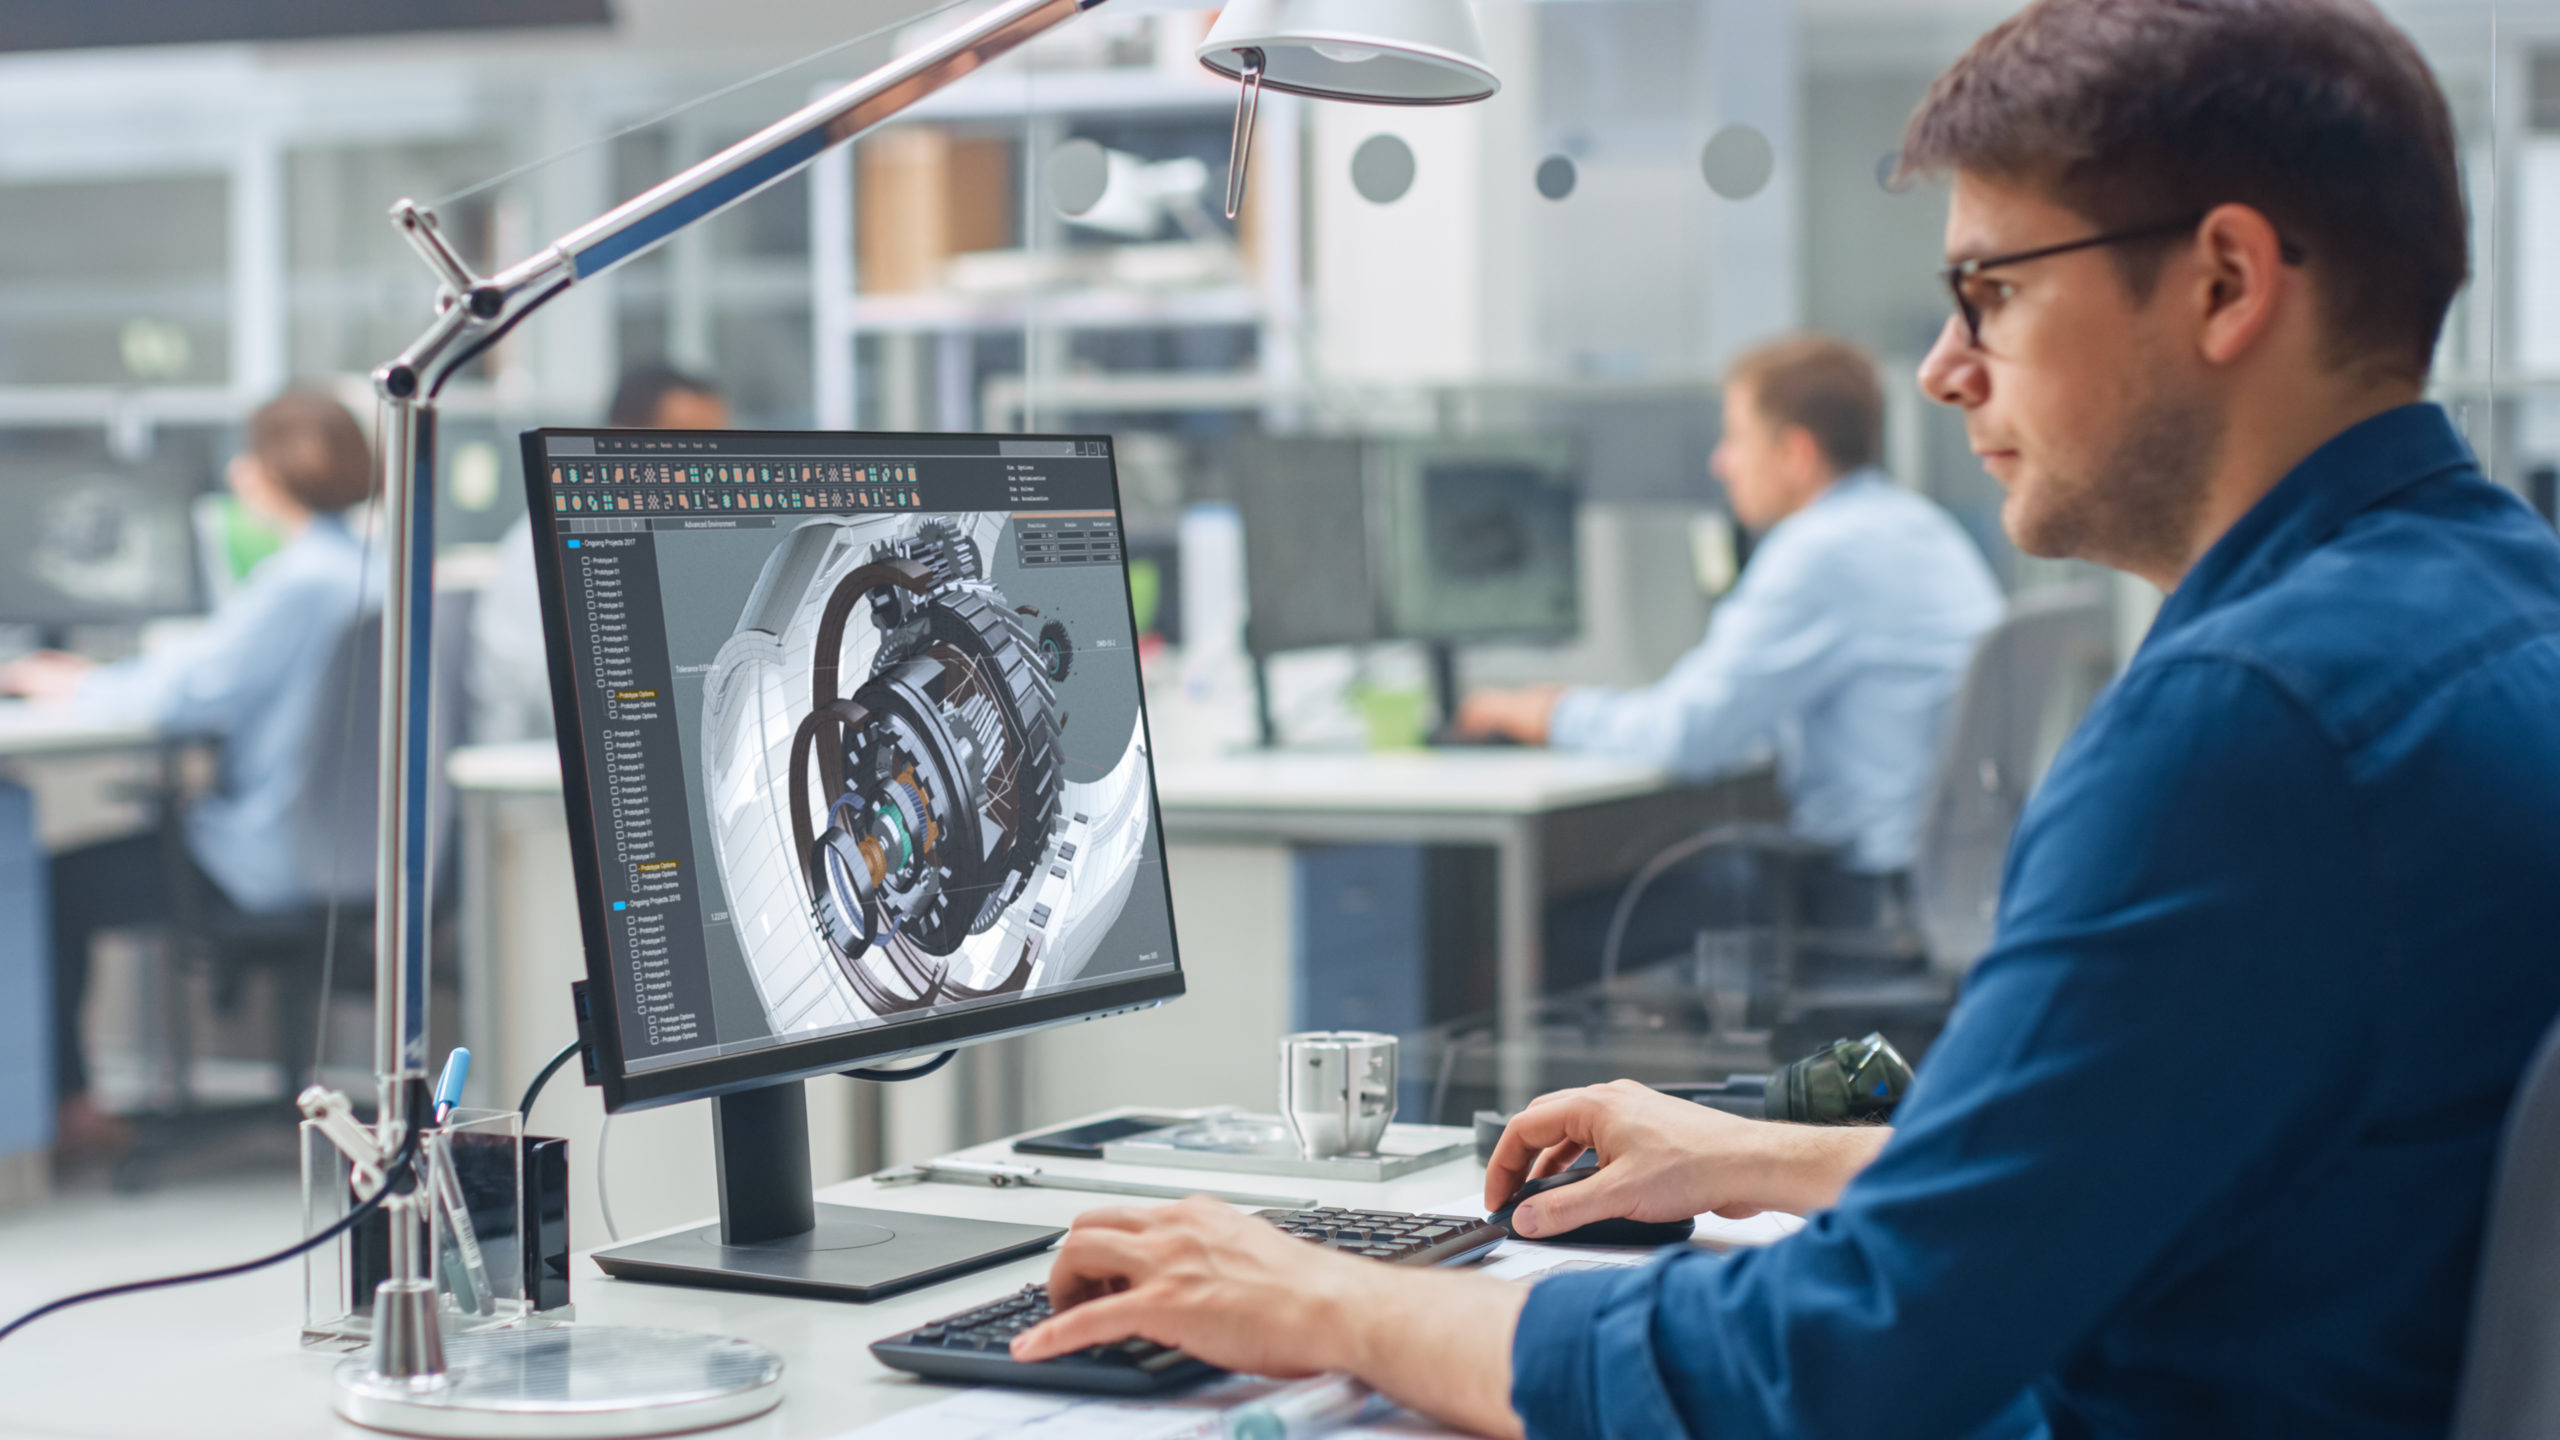 Engineer working with CAD